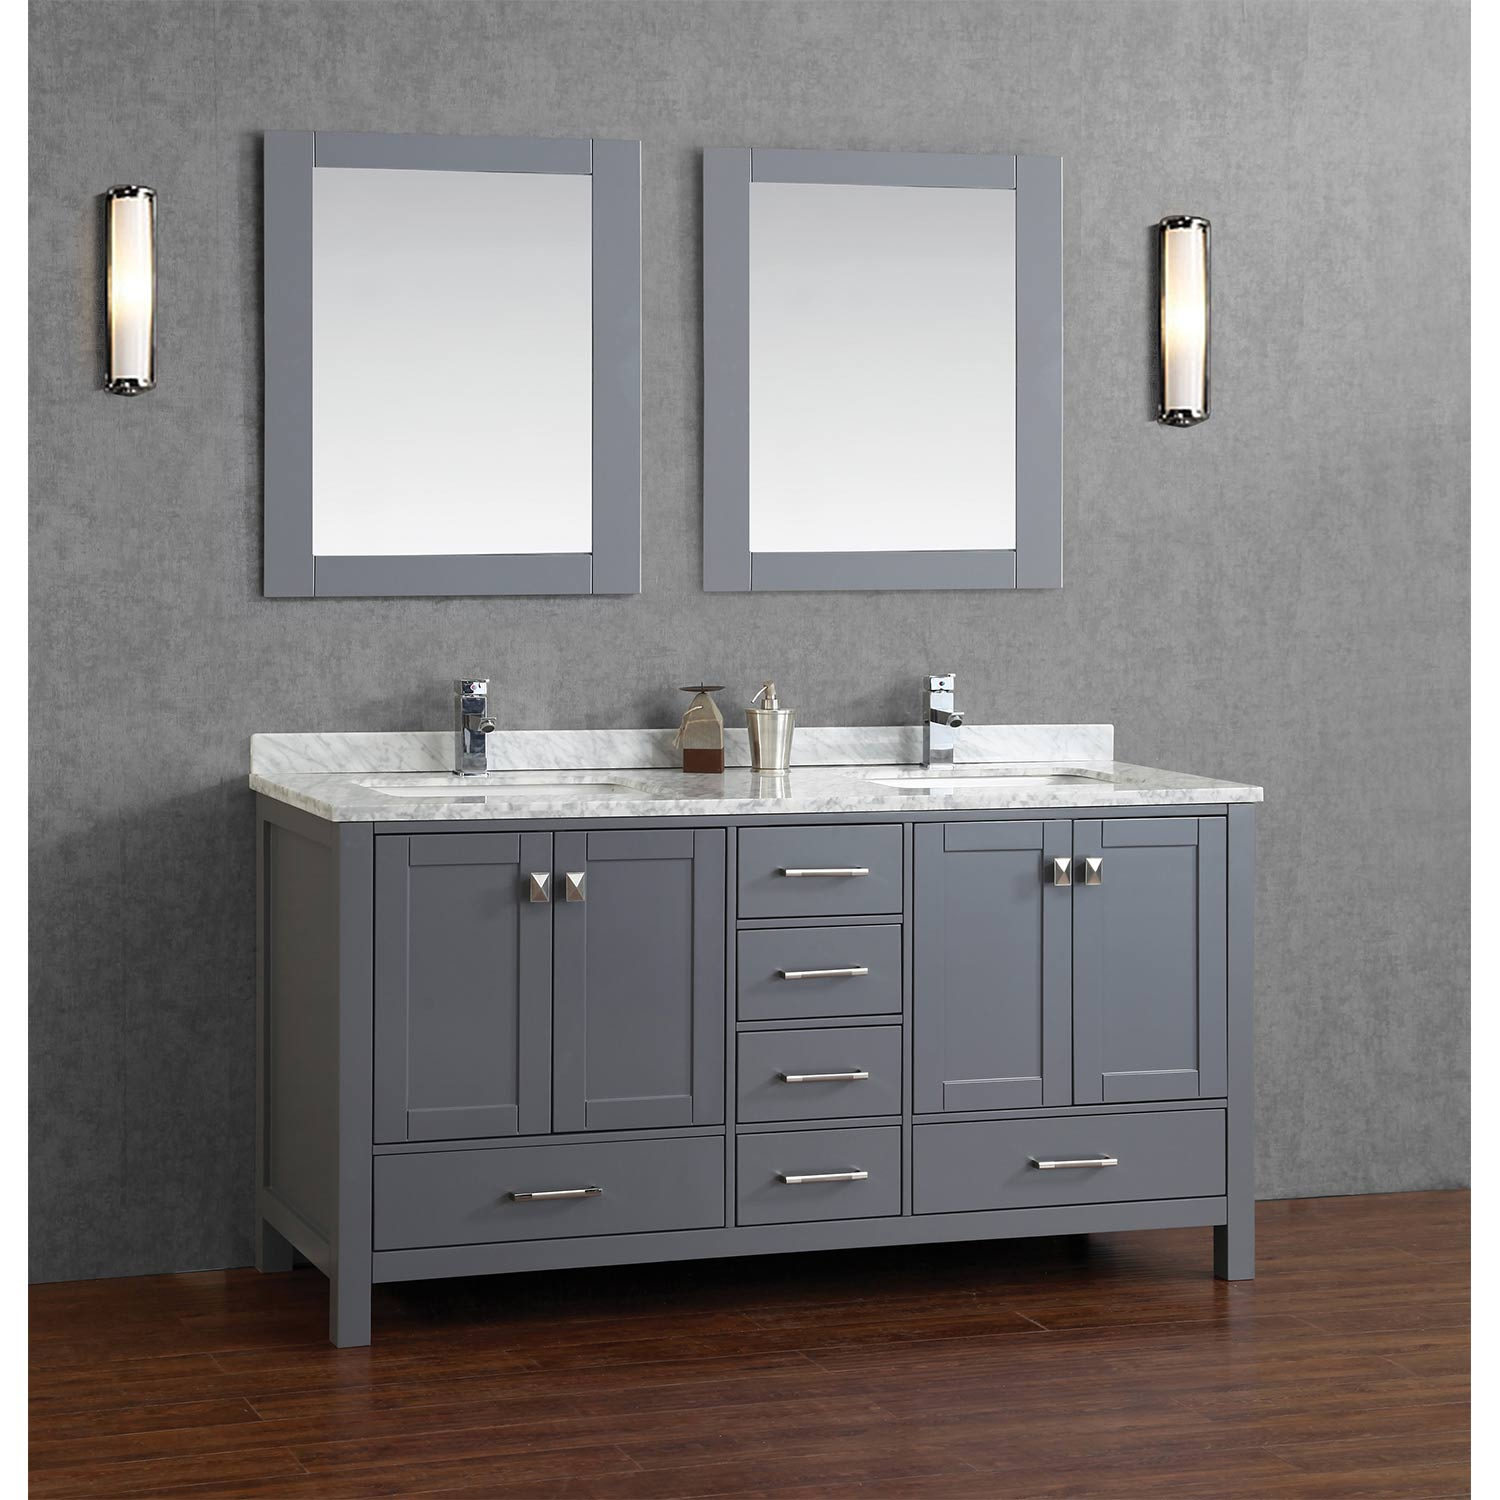 Buy vincent 72 inch solid wood double bathroom vanity in - 72 inch single sink bathroom vanity ...